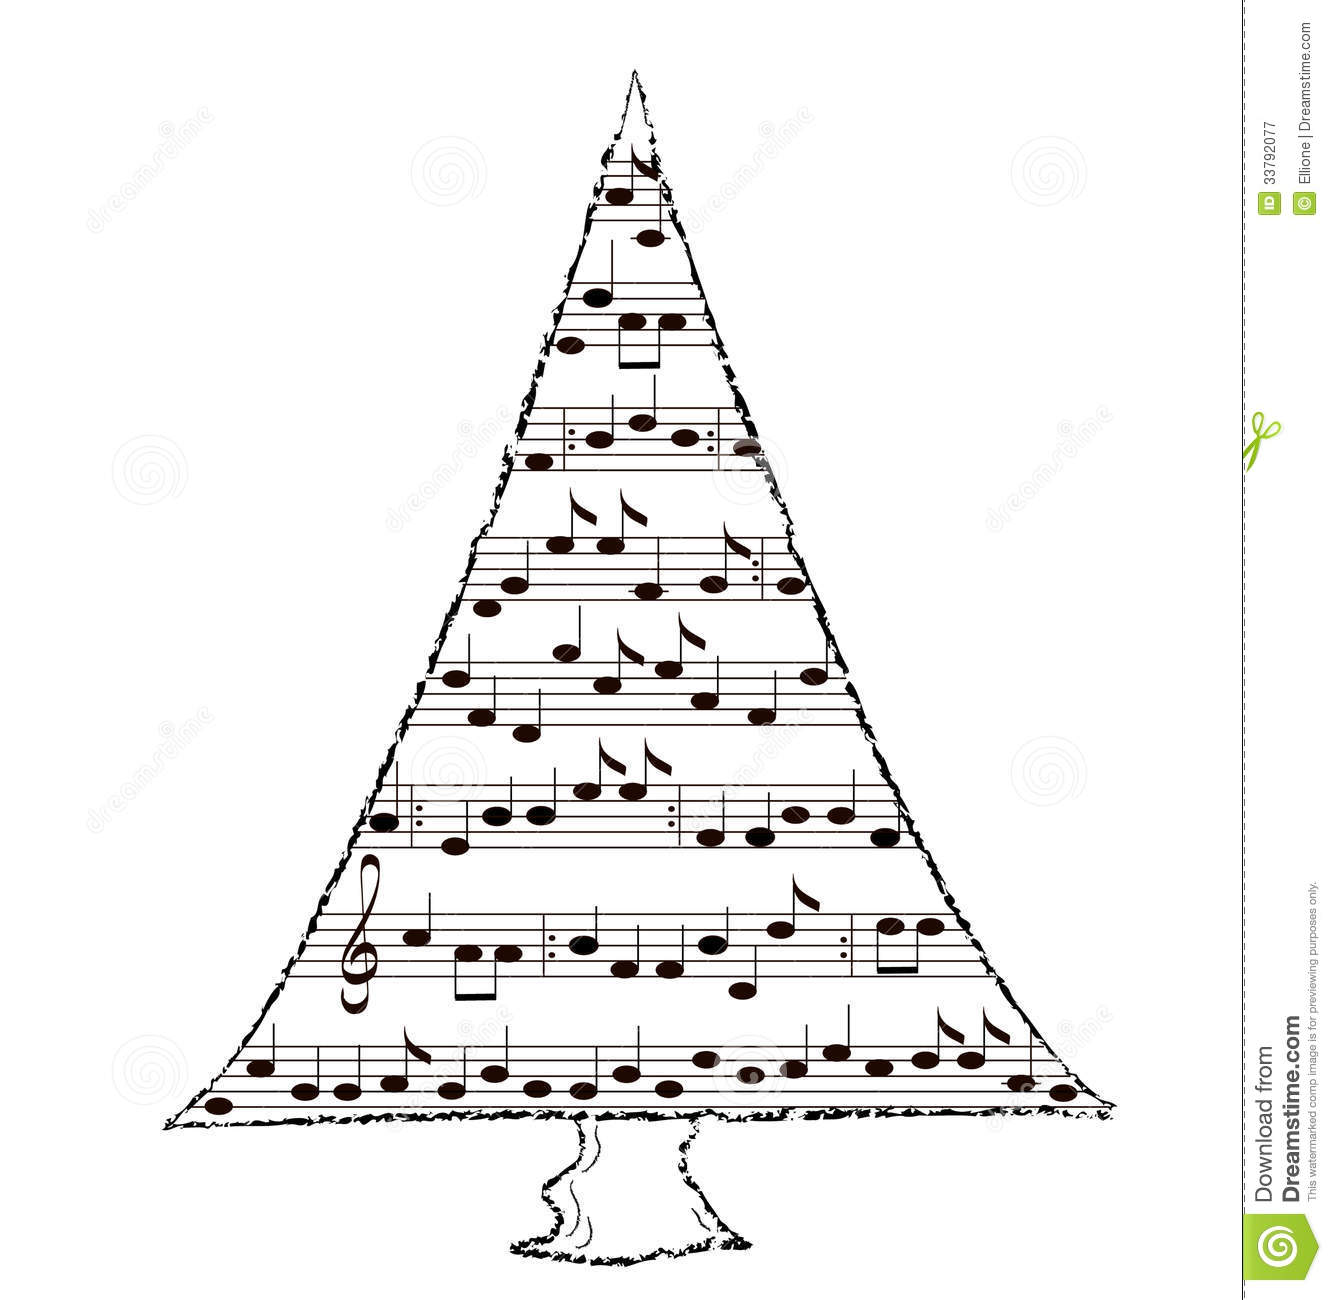 Holiday Spruce Tree, Christmas Music Theme Royalty Free Stock ...